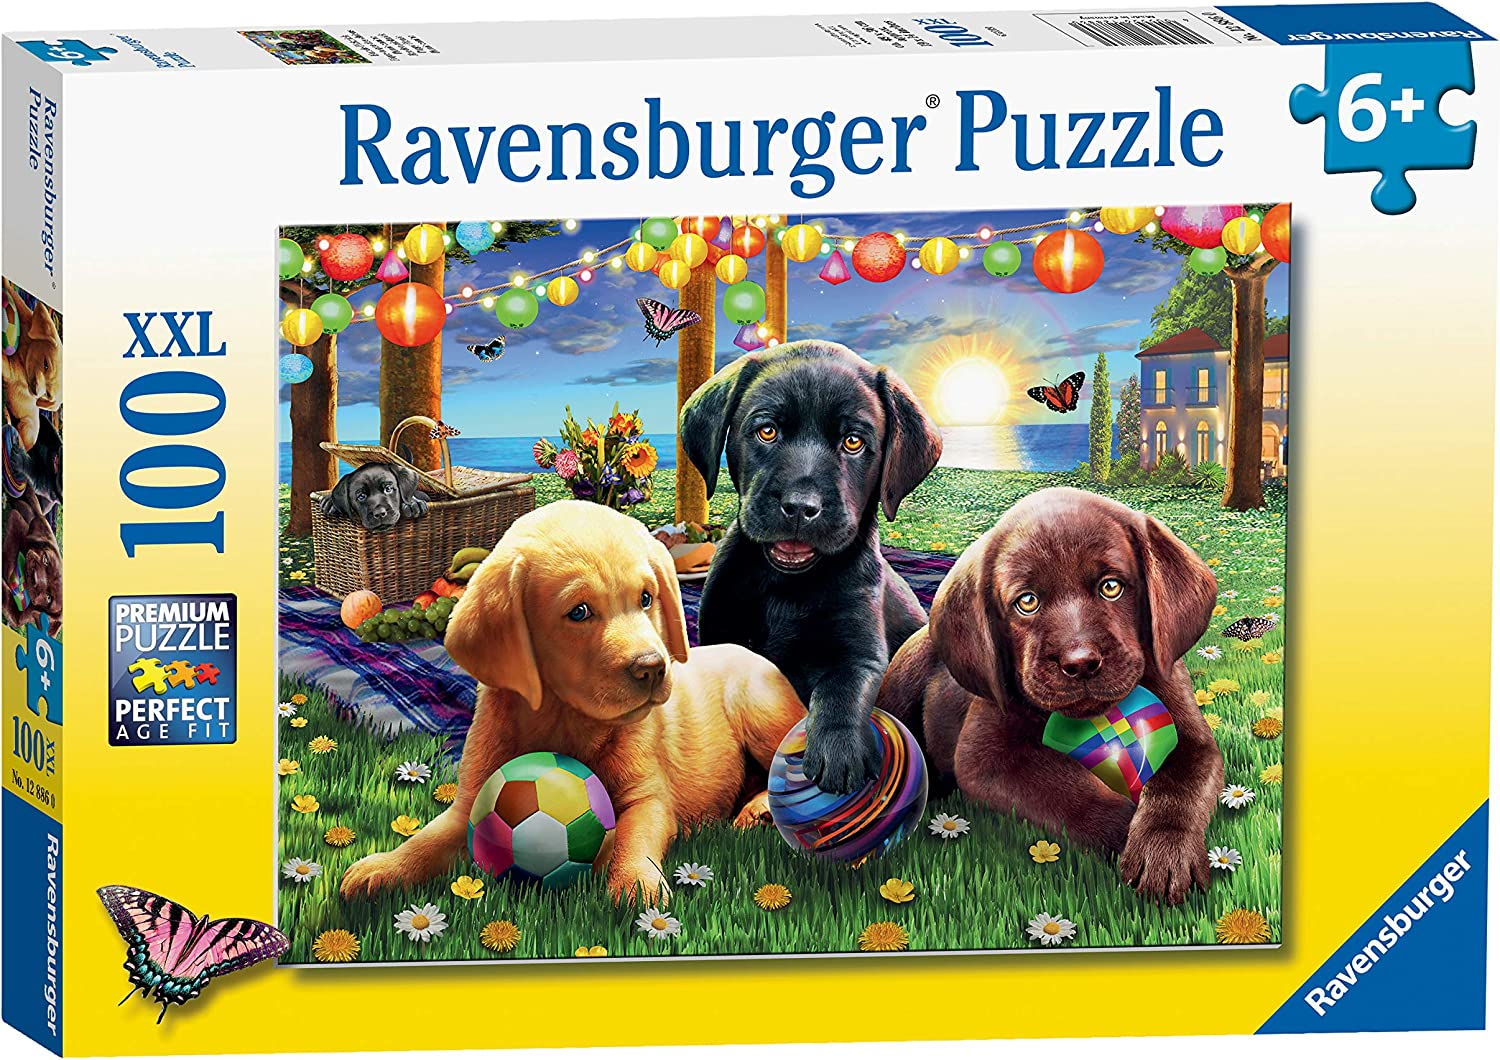 Ravensburger 12886 Puppy Picnic 100 Piece Puzzle for Kids - Every Piece is Unique, Pieces Fit Together Perfectly